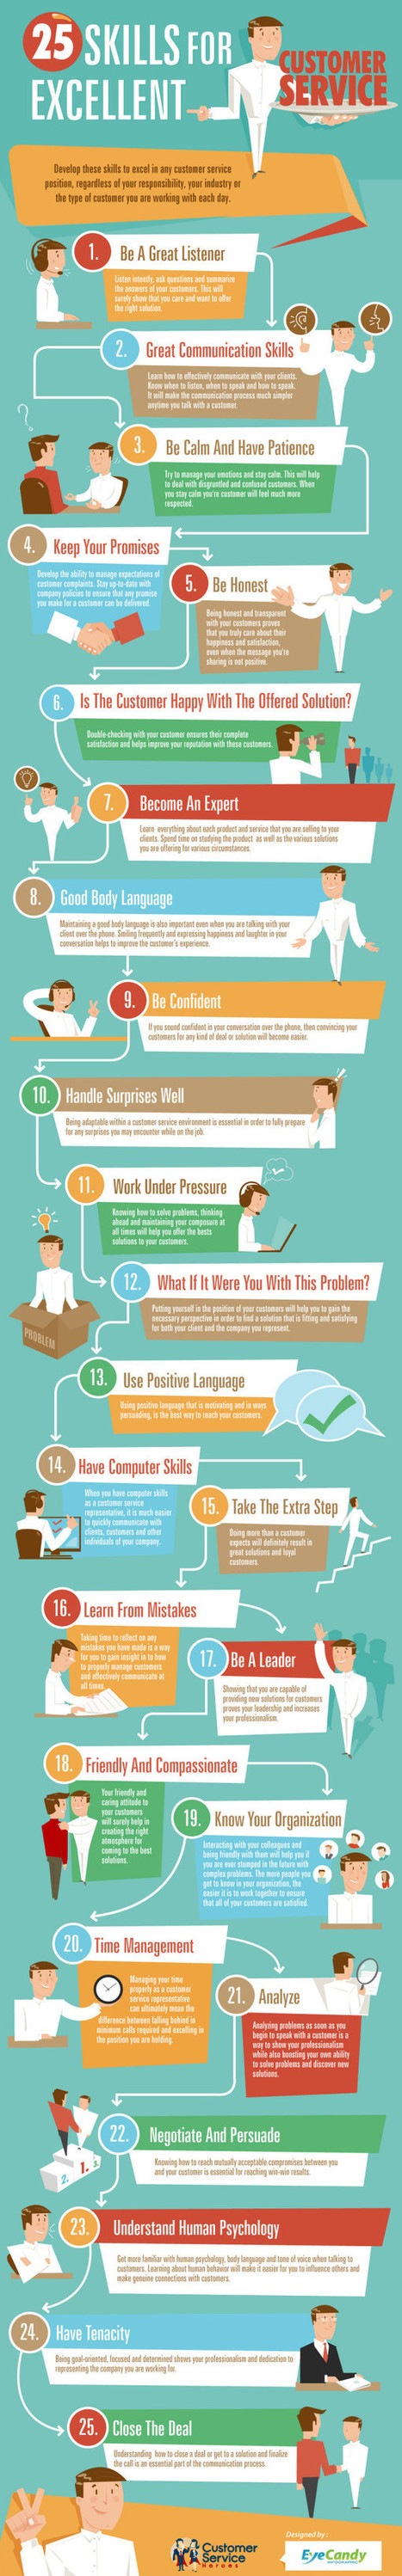 25 skills for excellent customer service [infographic] | e-Travel News & Trends | Scoop.it